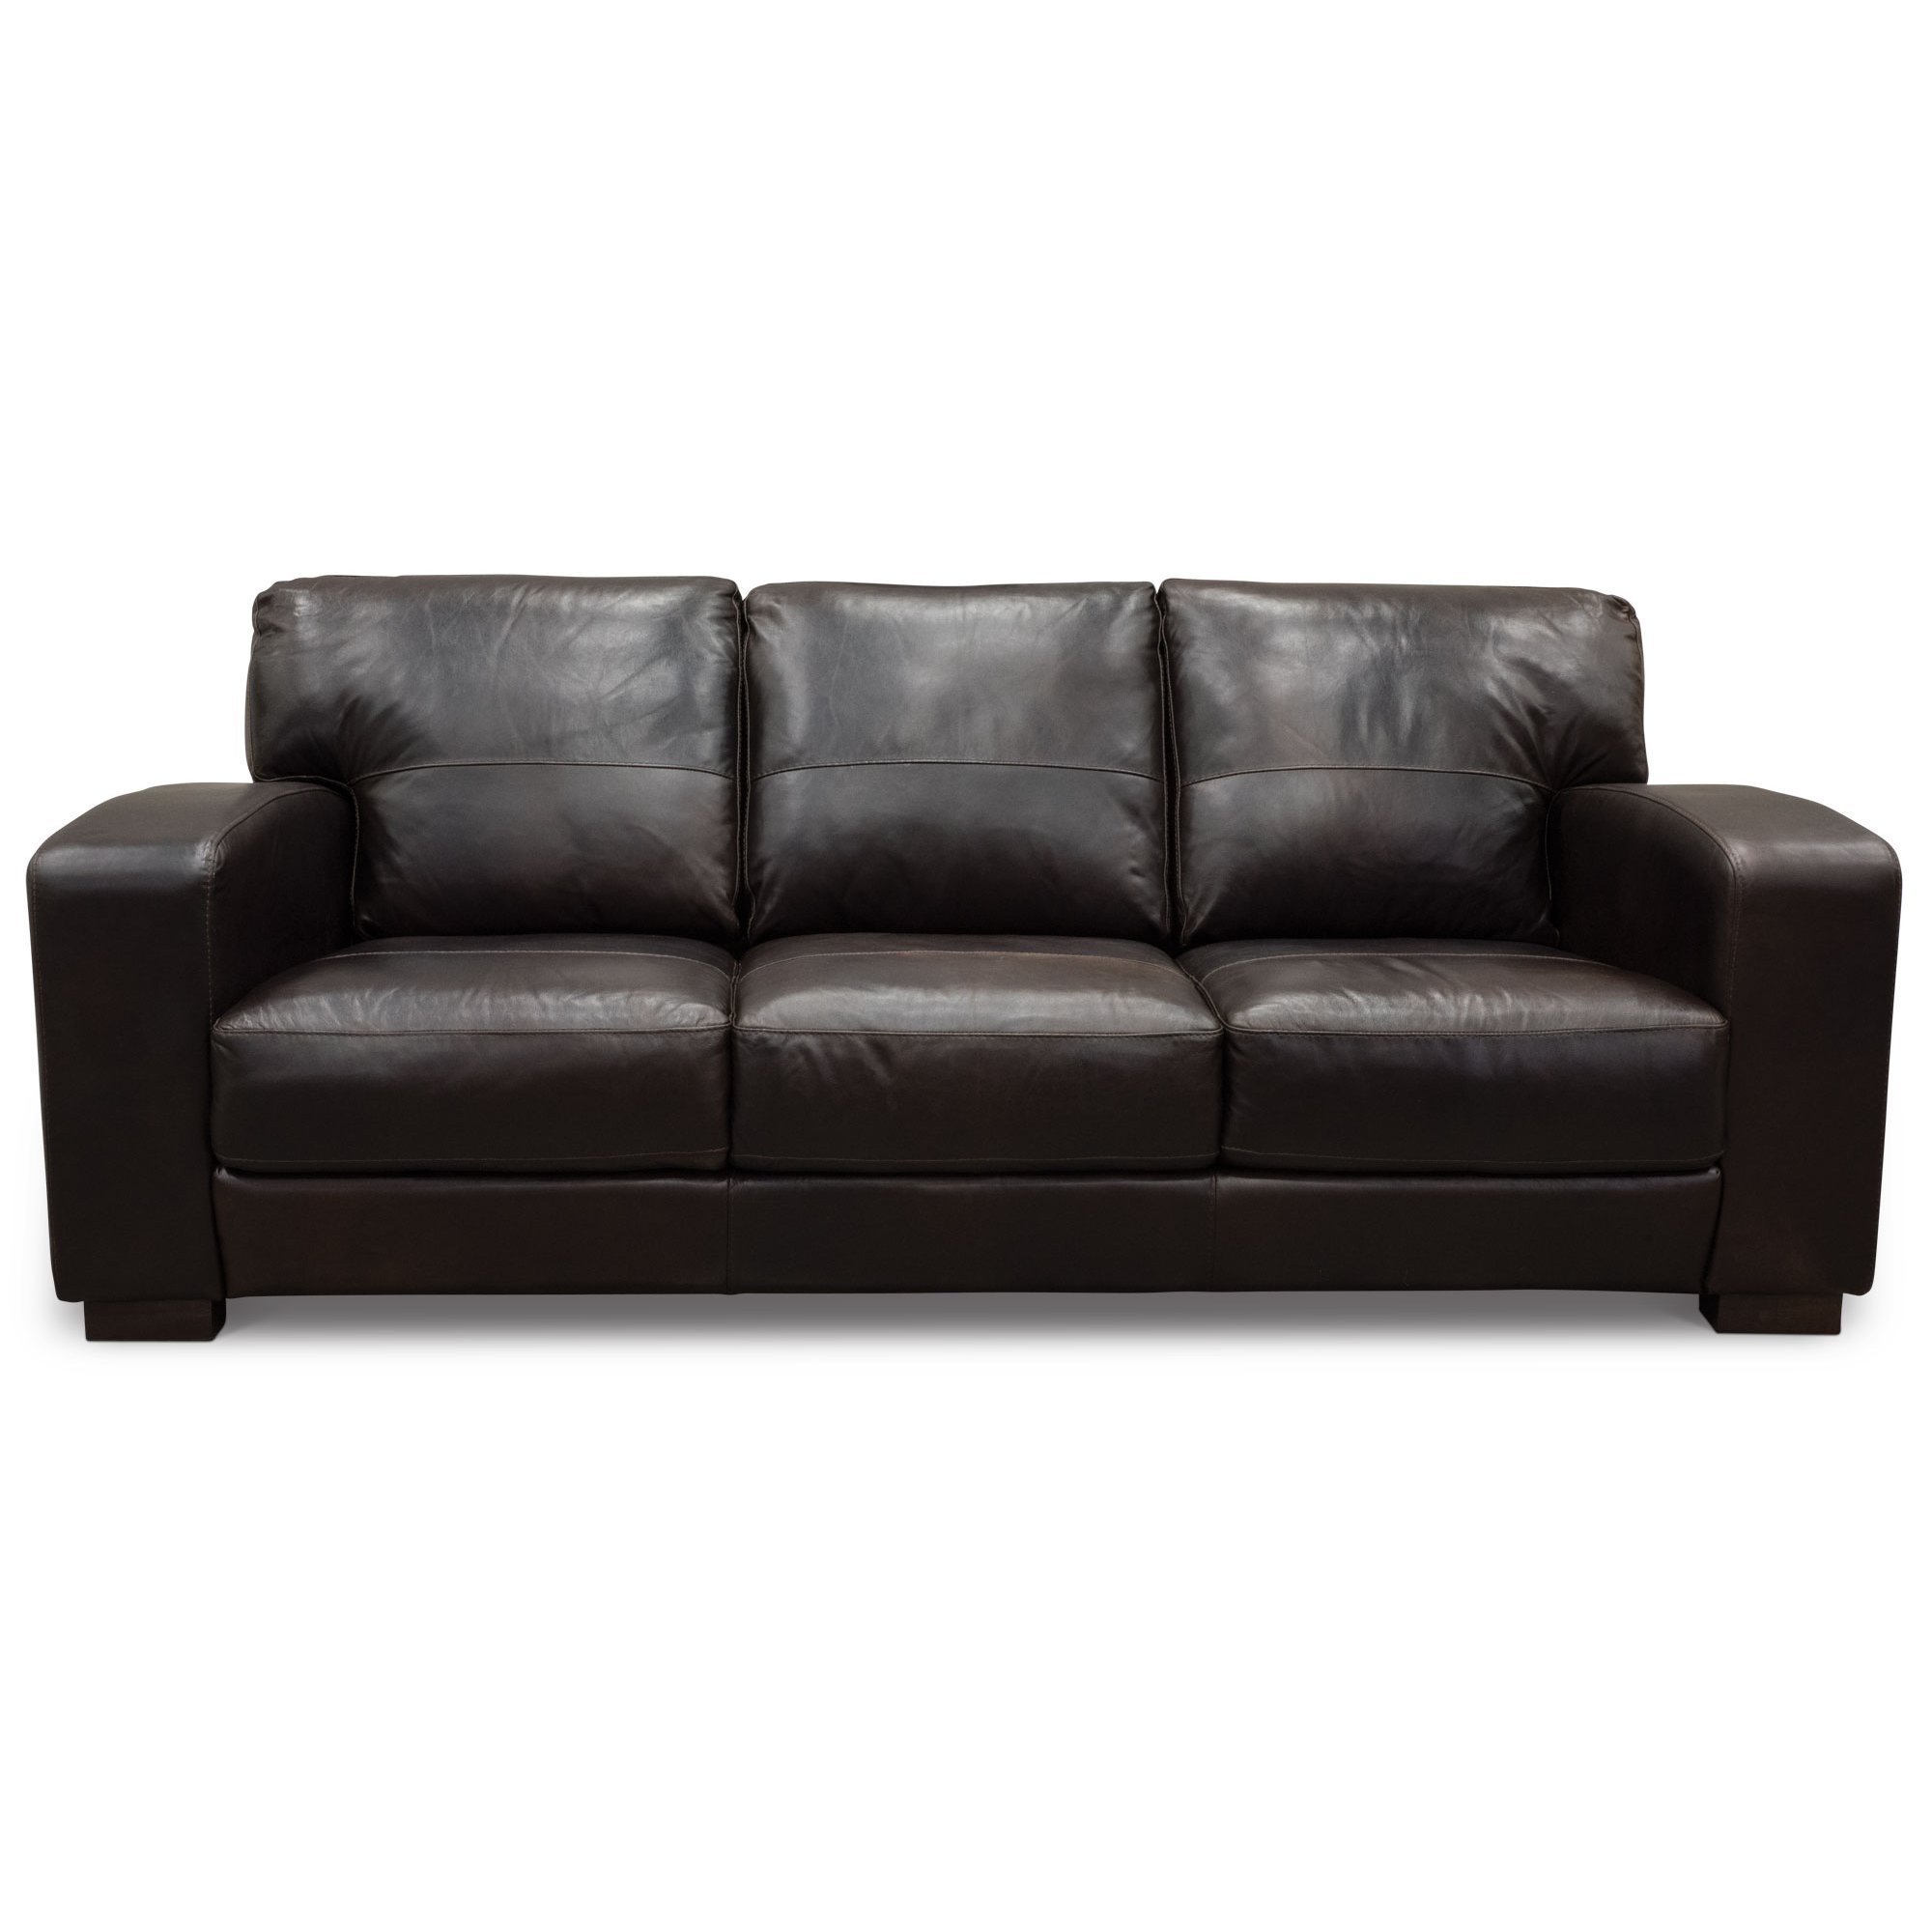 Casual Contemporary Brown Leather Sofa Aspen